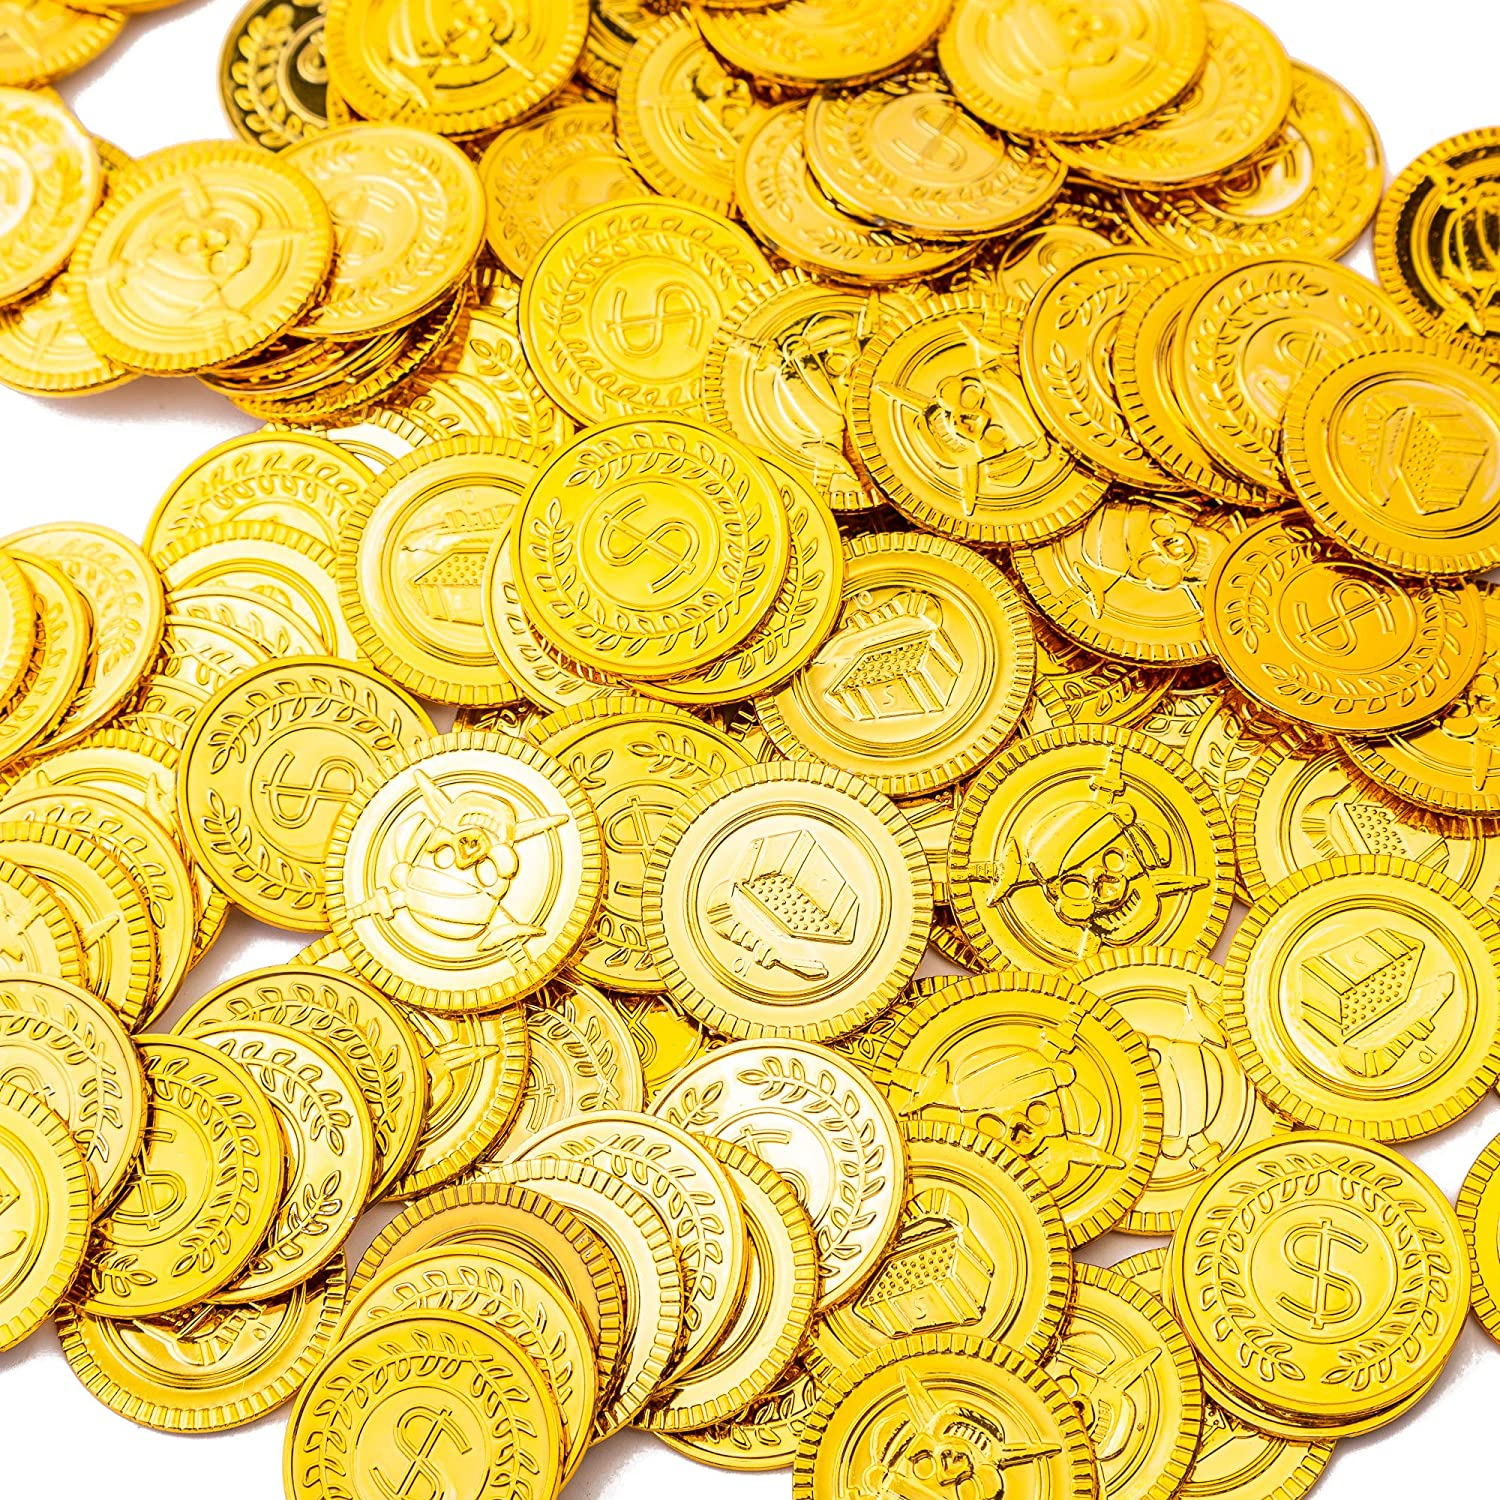 100Pcs Plastic Play Coins Gold Pirate Treasure Hunt Coins Toys For Kids Party Theme Props Decoration,Party Favor,Lucky Draw Games Plastic Gold Coins Great For Kids Toddlers Teachers /¡/ Pemalin